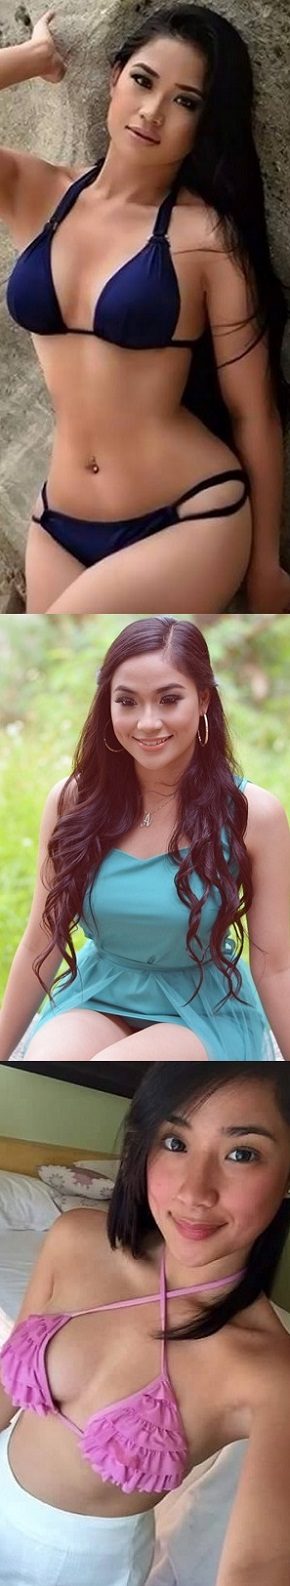 ALYZZA  AGUSTIN  Photos 8!